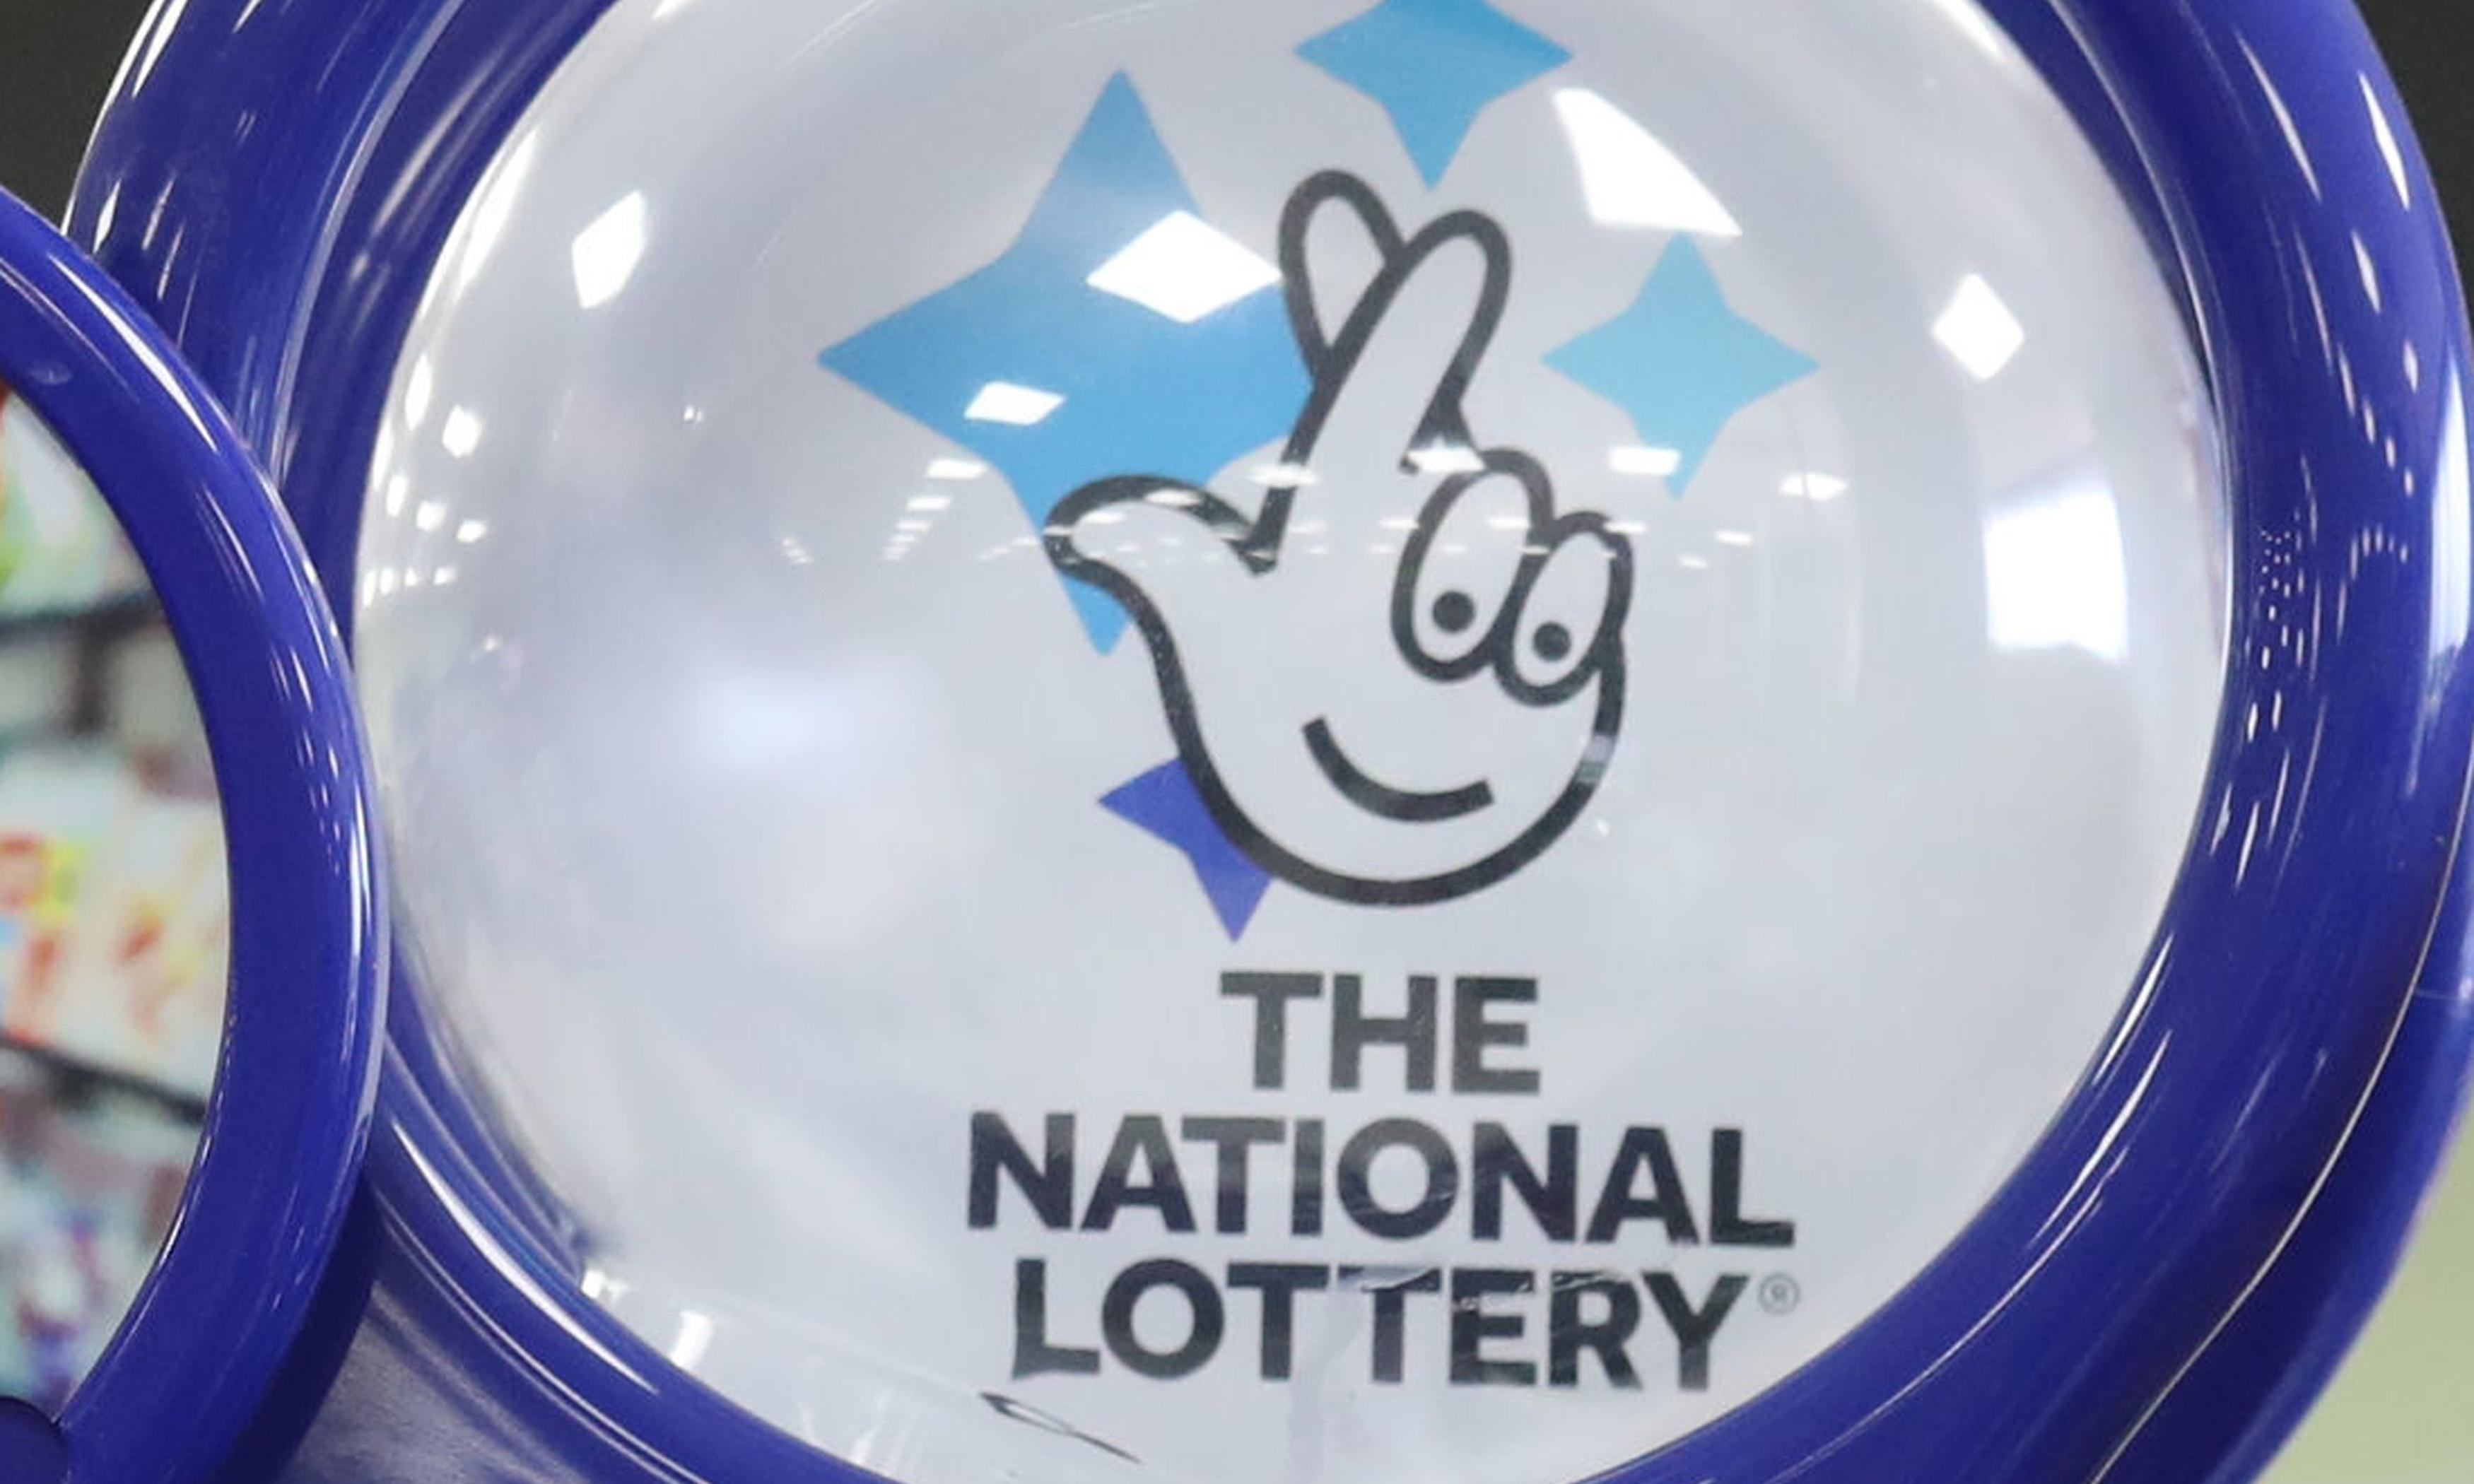 National Lottery to give grant to transgender children's group